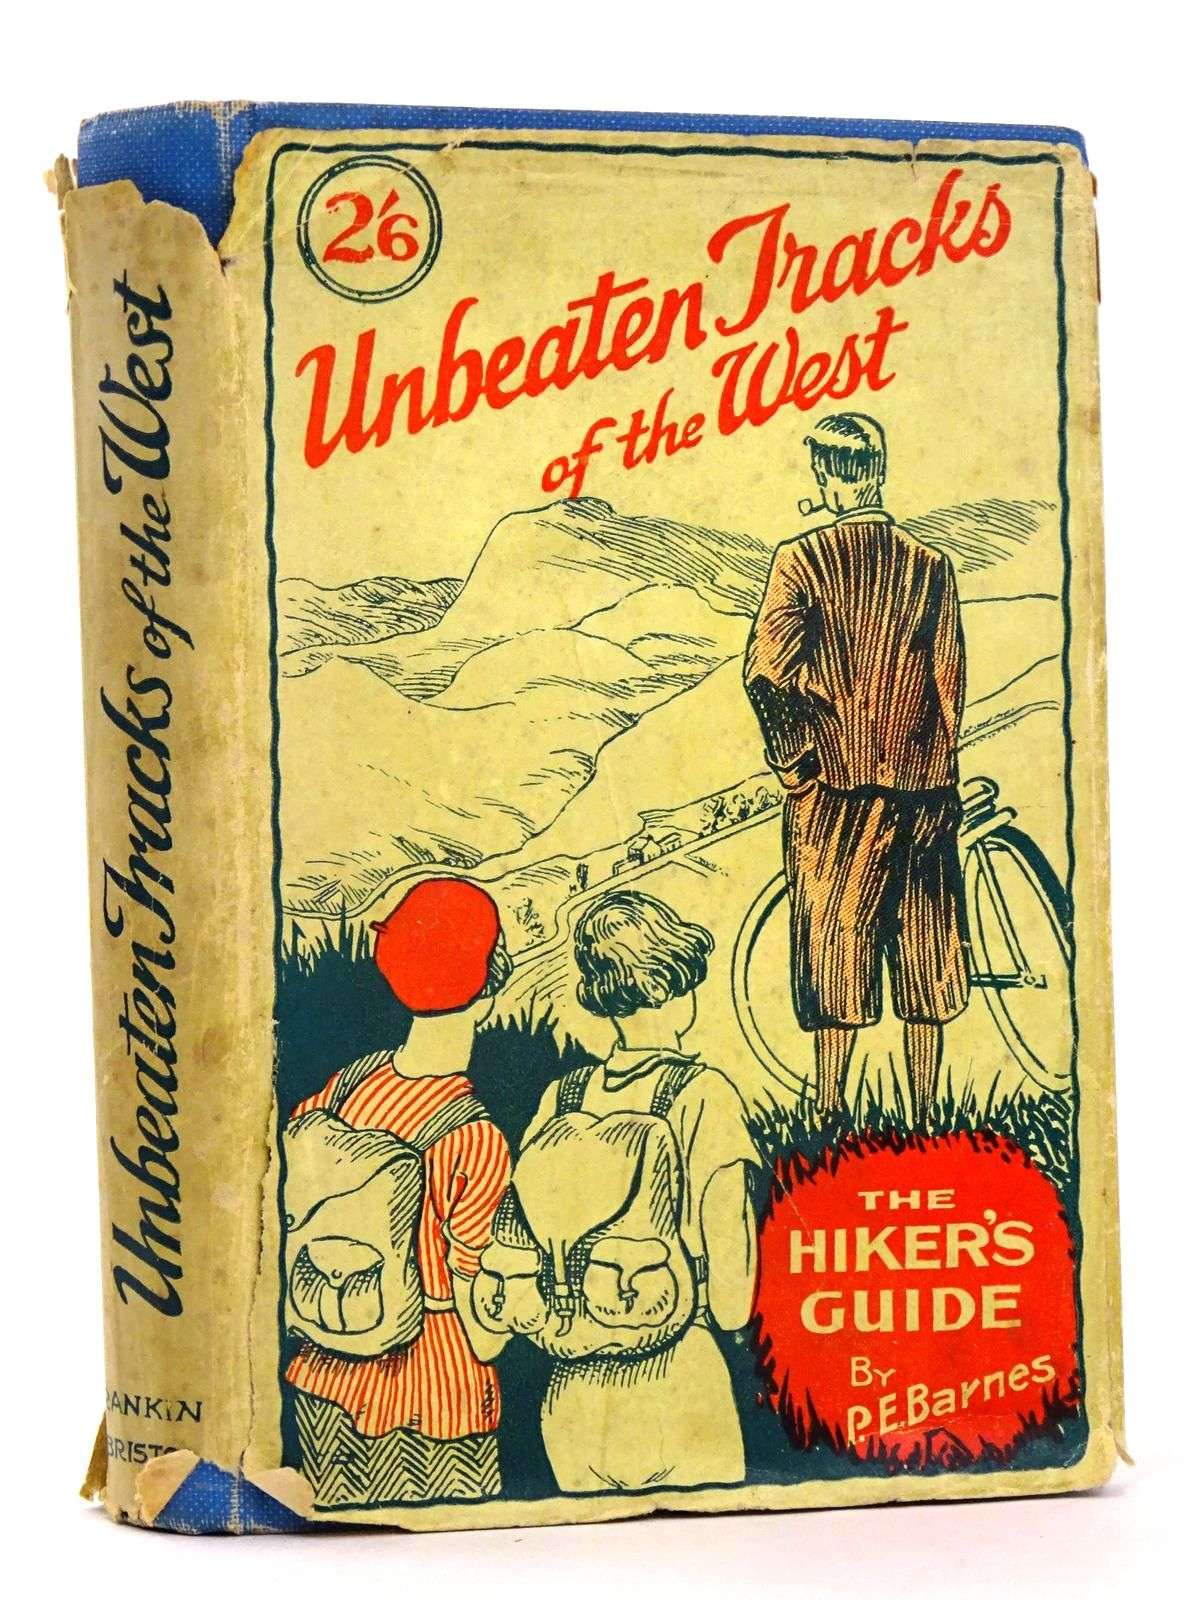 Photo of UNBEATEN TRACKS OF THE WEST THE HIKER'S GUIDE- Stock Number: 1818550